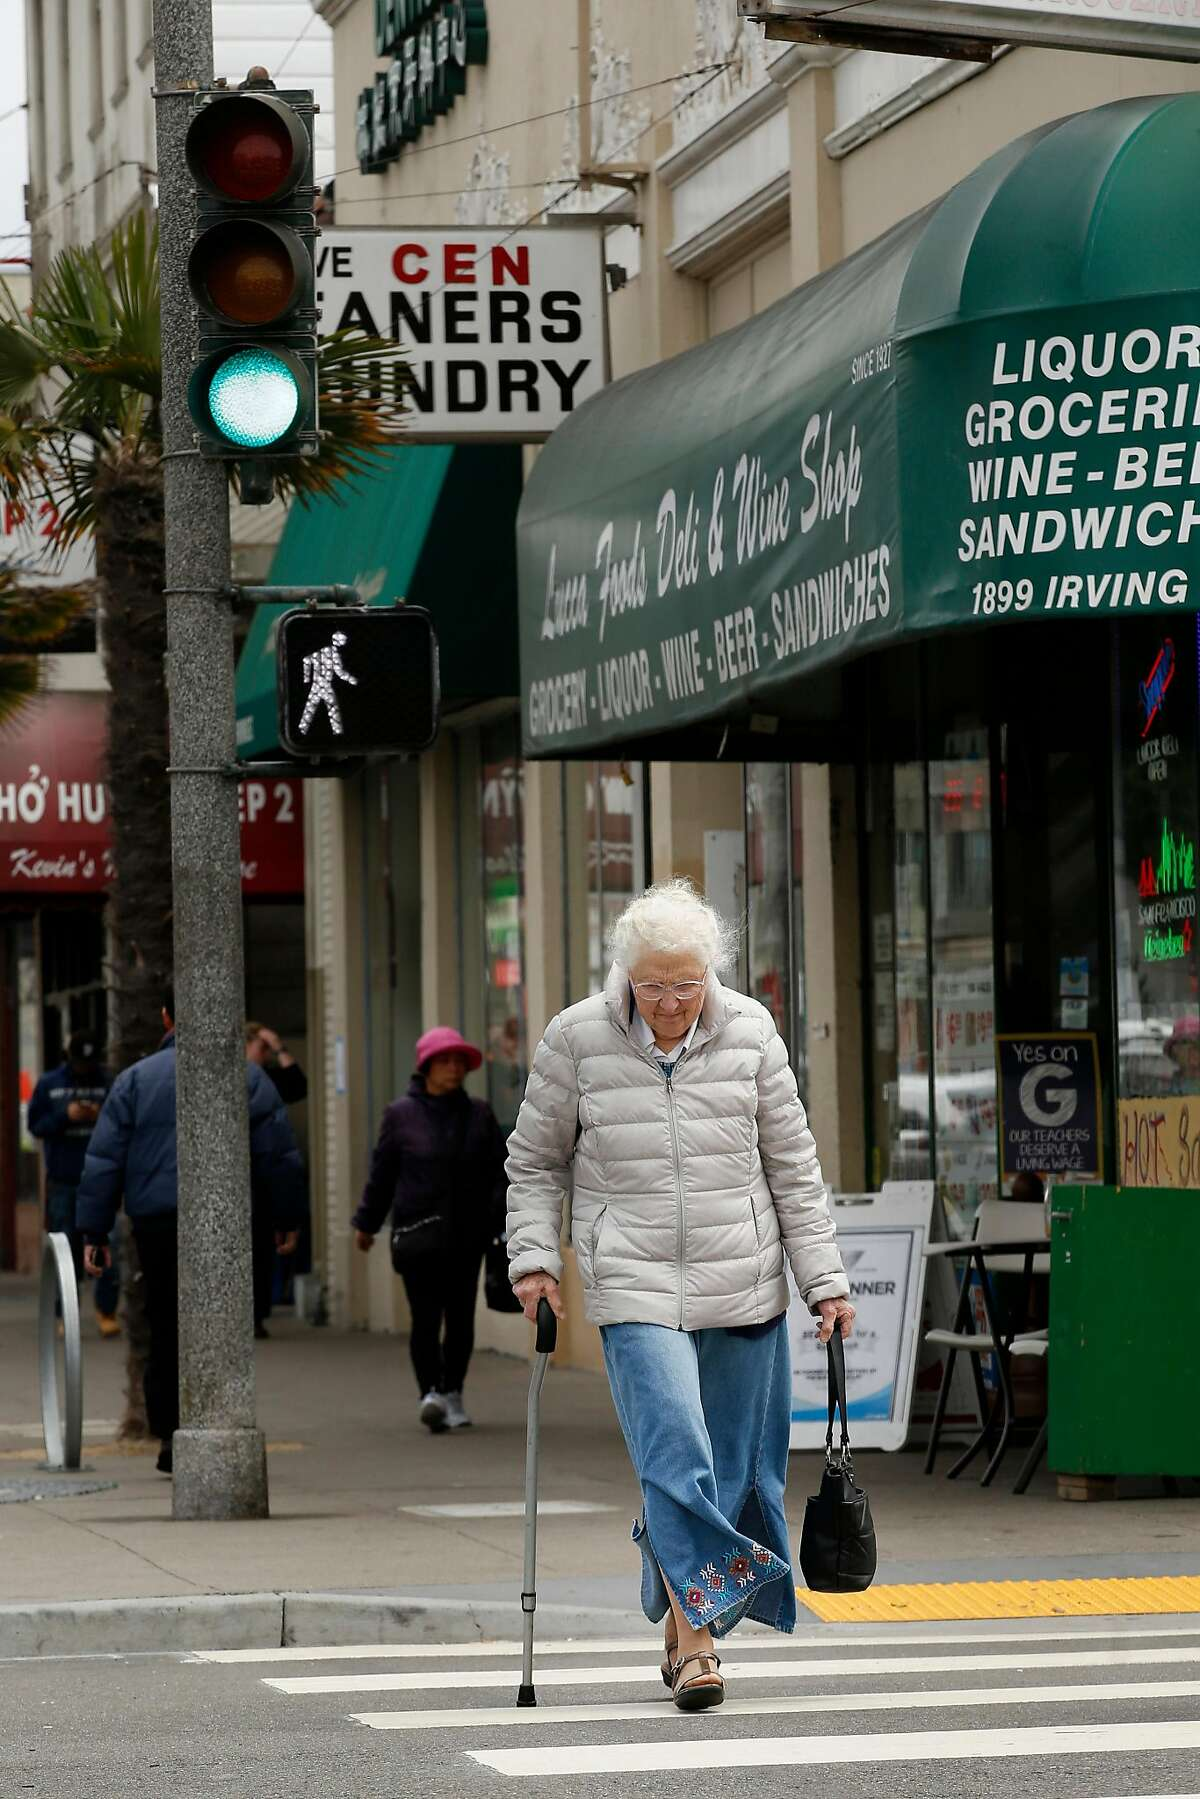 """Valerie Meehan, age 93, makes her way down the crosswalk at Irving Street, Tuesday, May 8, 2018, in San Francisco, Calif. The Municipal Transportation Agency agreed to give people more time to get across the street in busy intersections by slowing the signal timing from 3 feet per second to 4.5 feet per second. Meehan, a native San Franciscan, said the time extension would be very helpful. """"If I don't start immediately it's hard to get across and I have difficulty breathing when I have to walk fast,"""" Meehan said."""